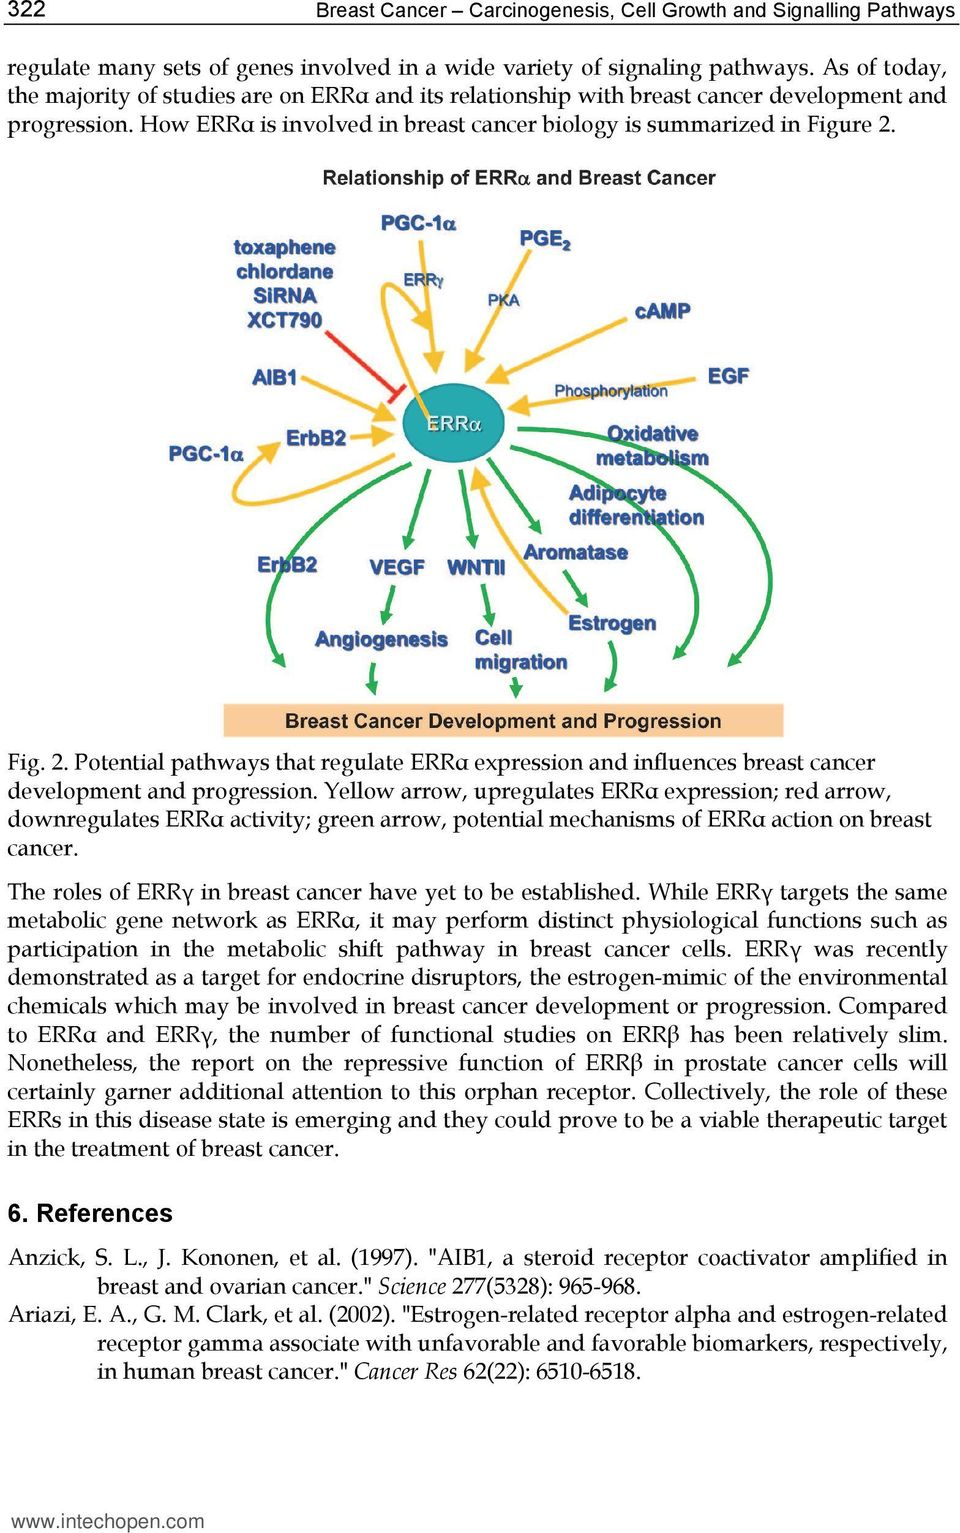 Fig. 2. Potential pathways that regulate ERR expression and influences breast cancer development and progression.